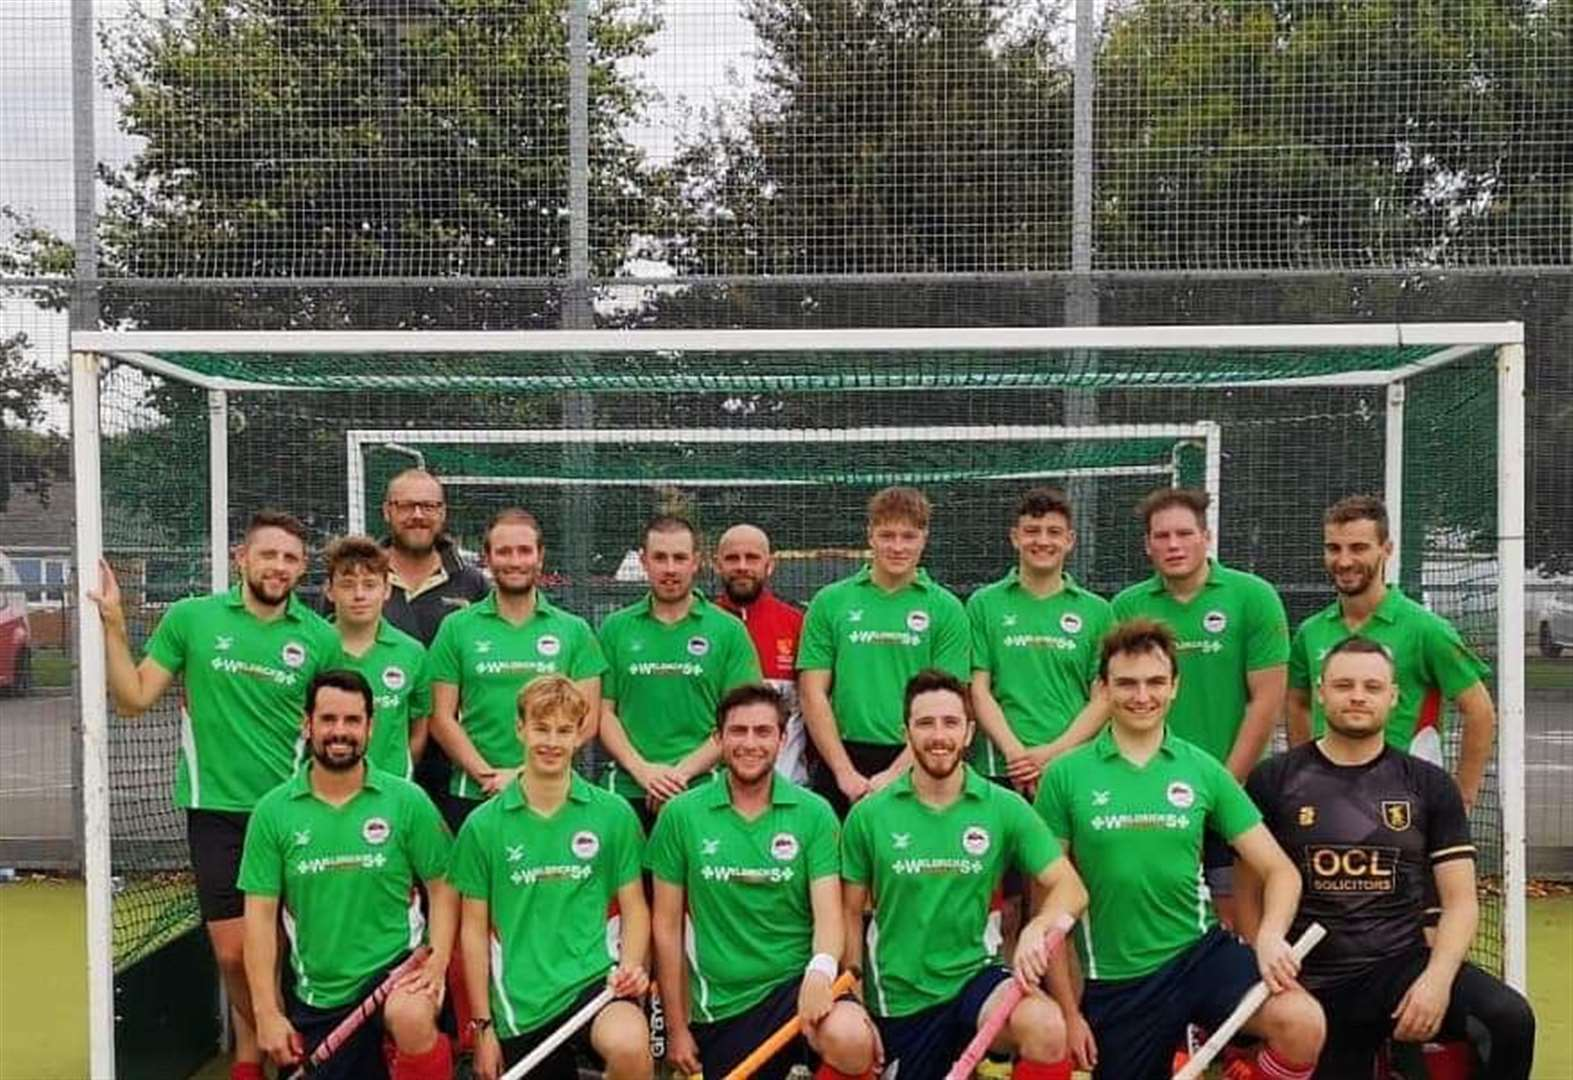 Hockey pitch to receive £240k investment